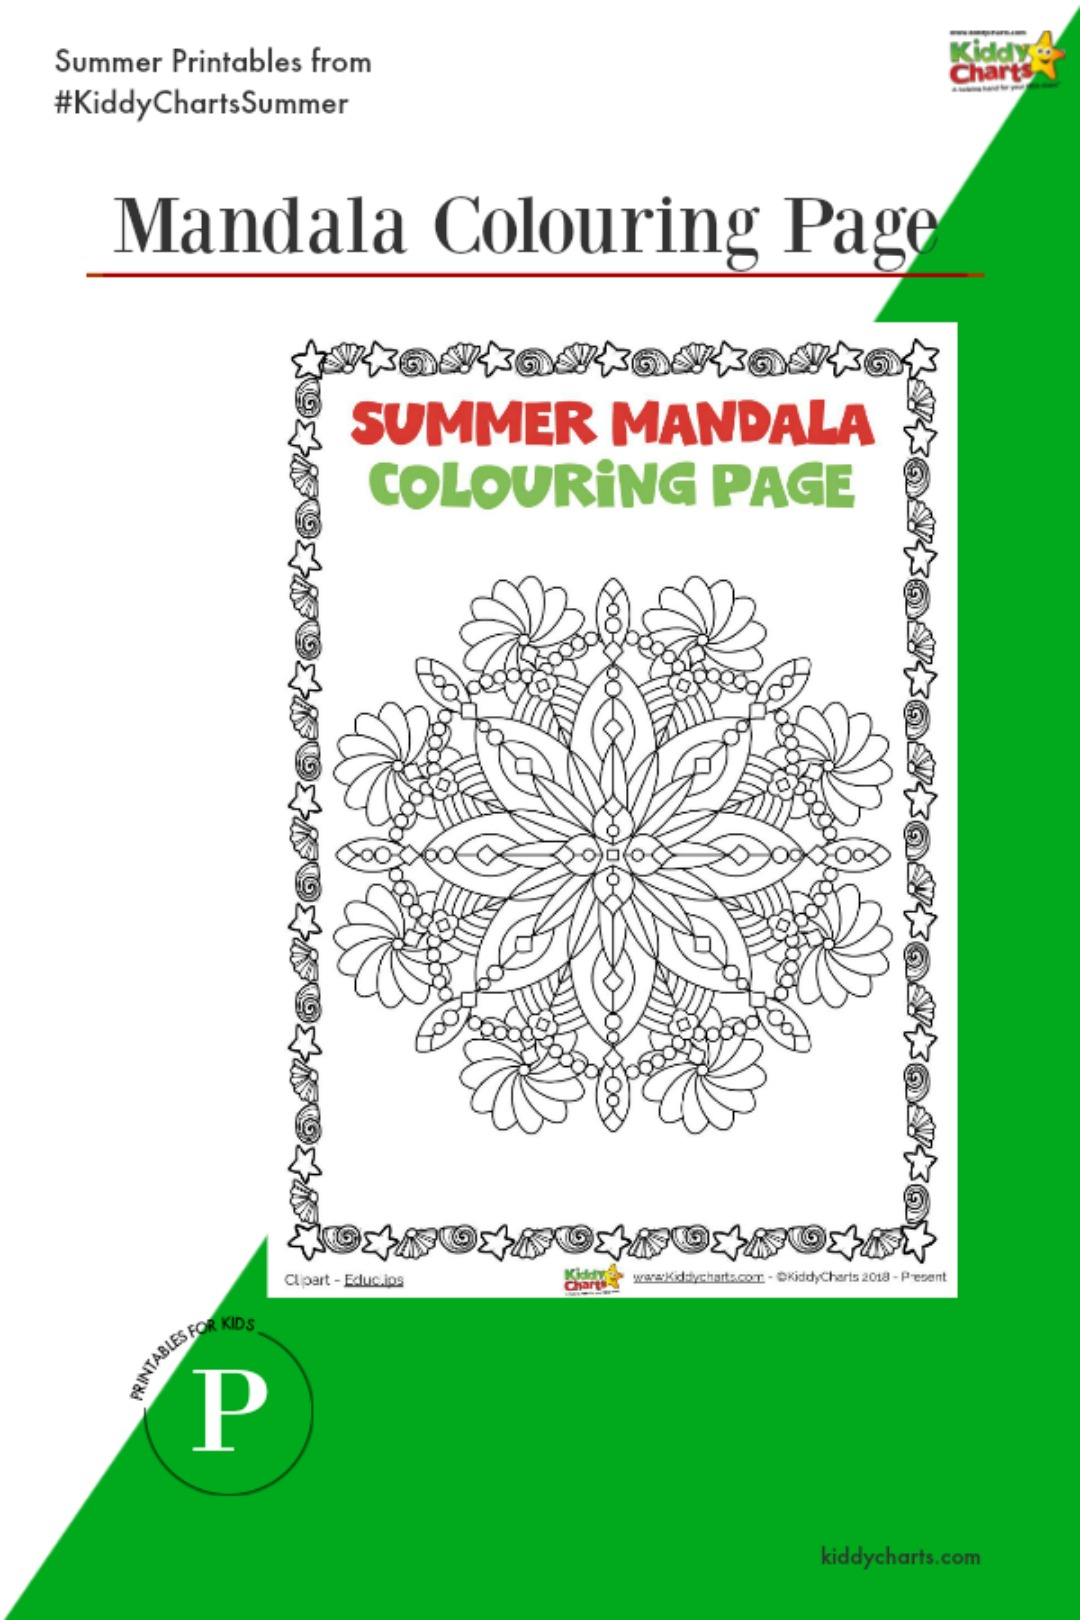 We all love a mandala and here is a gorgeous summer mandala colouring page for you to colour in. Pop over to the site for more fun summer activities and loads of other printables too! #printables #kids #summer